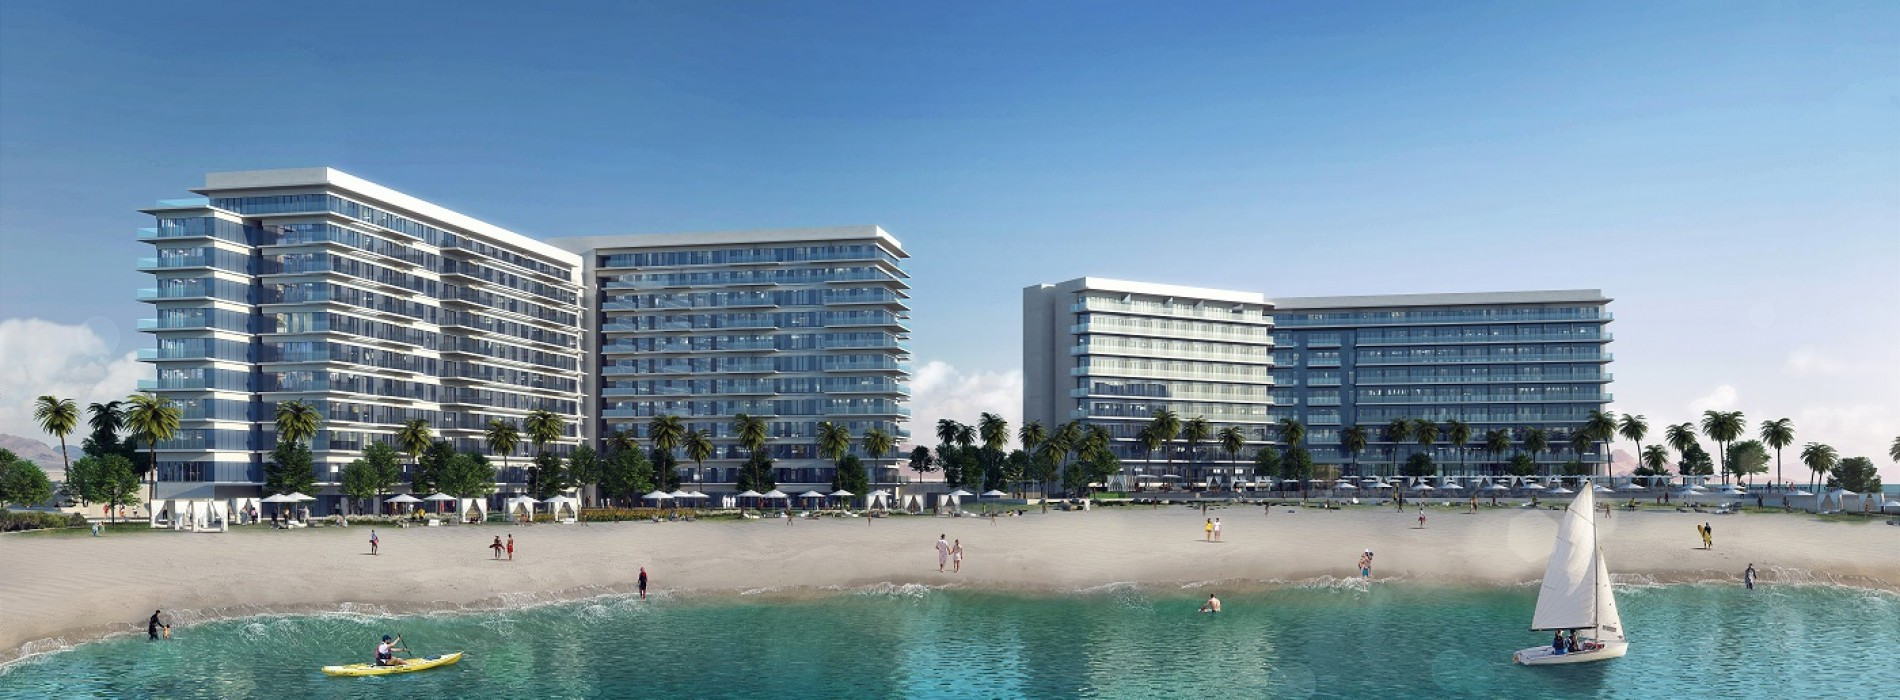 Emaar launches 'Address Al Marjan Island' Hotel